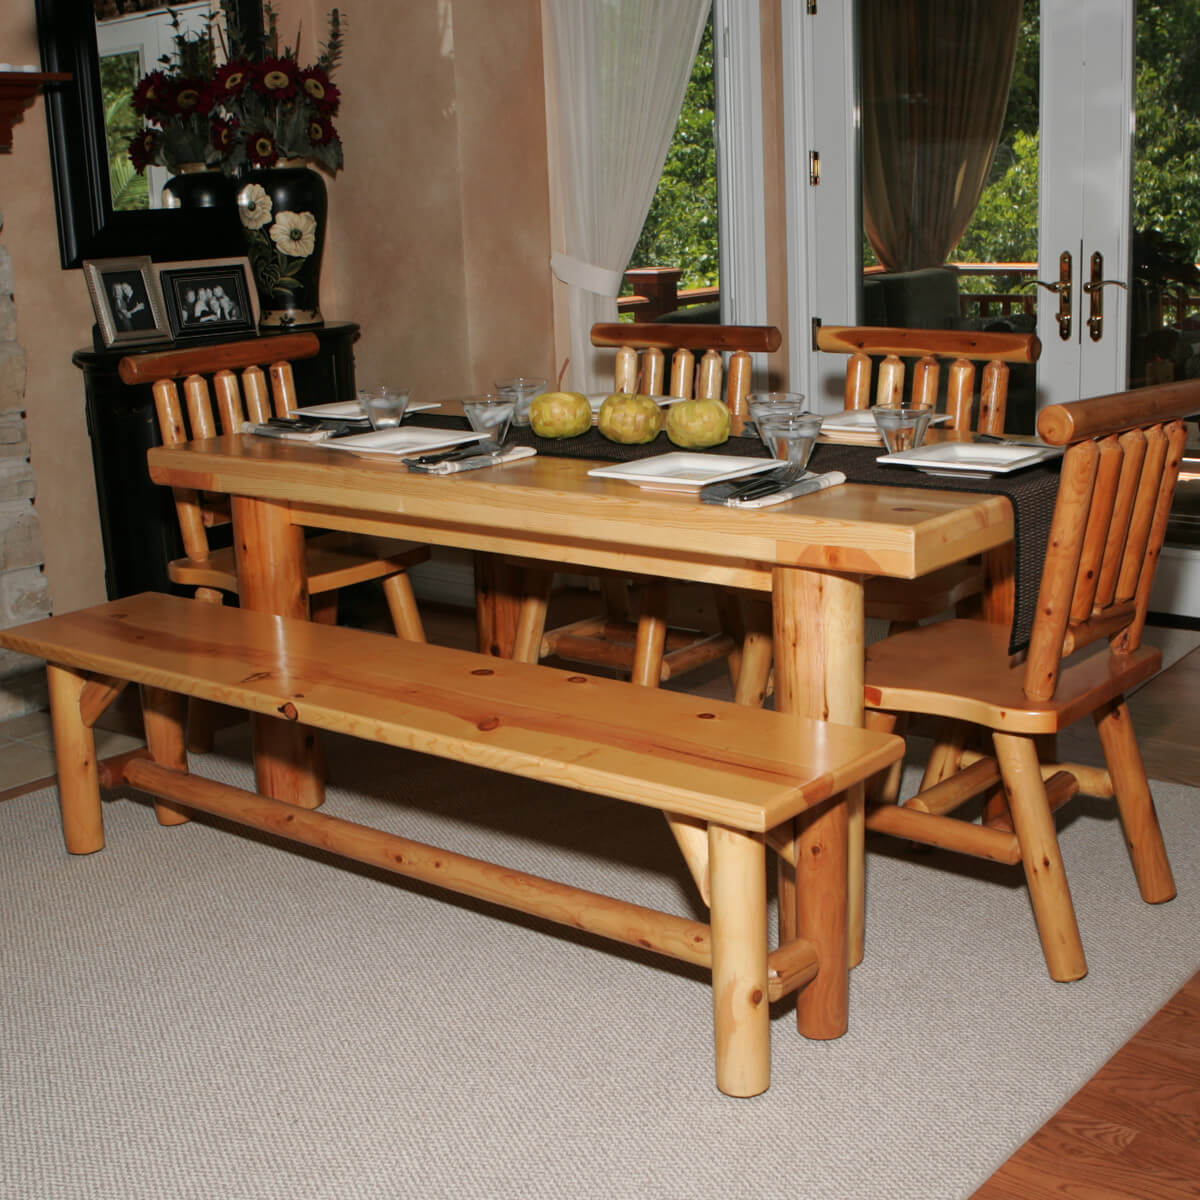 Superbe Hereu0027s A Dining Table Set With Bench Perfect For The Log Cabin Or Home.  Seating